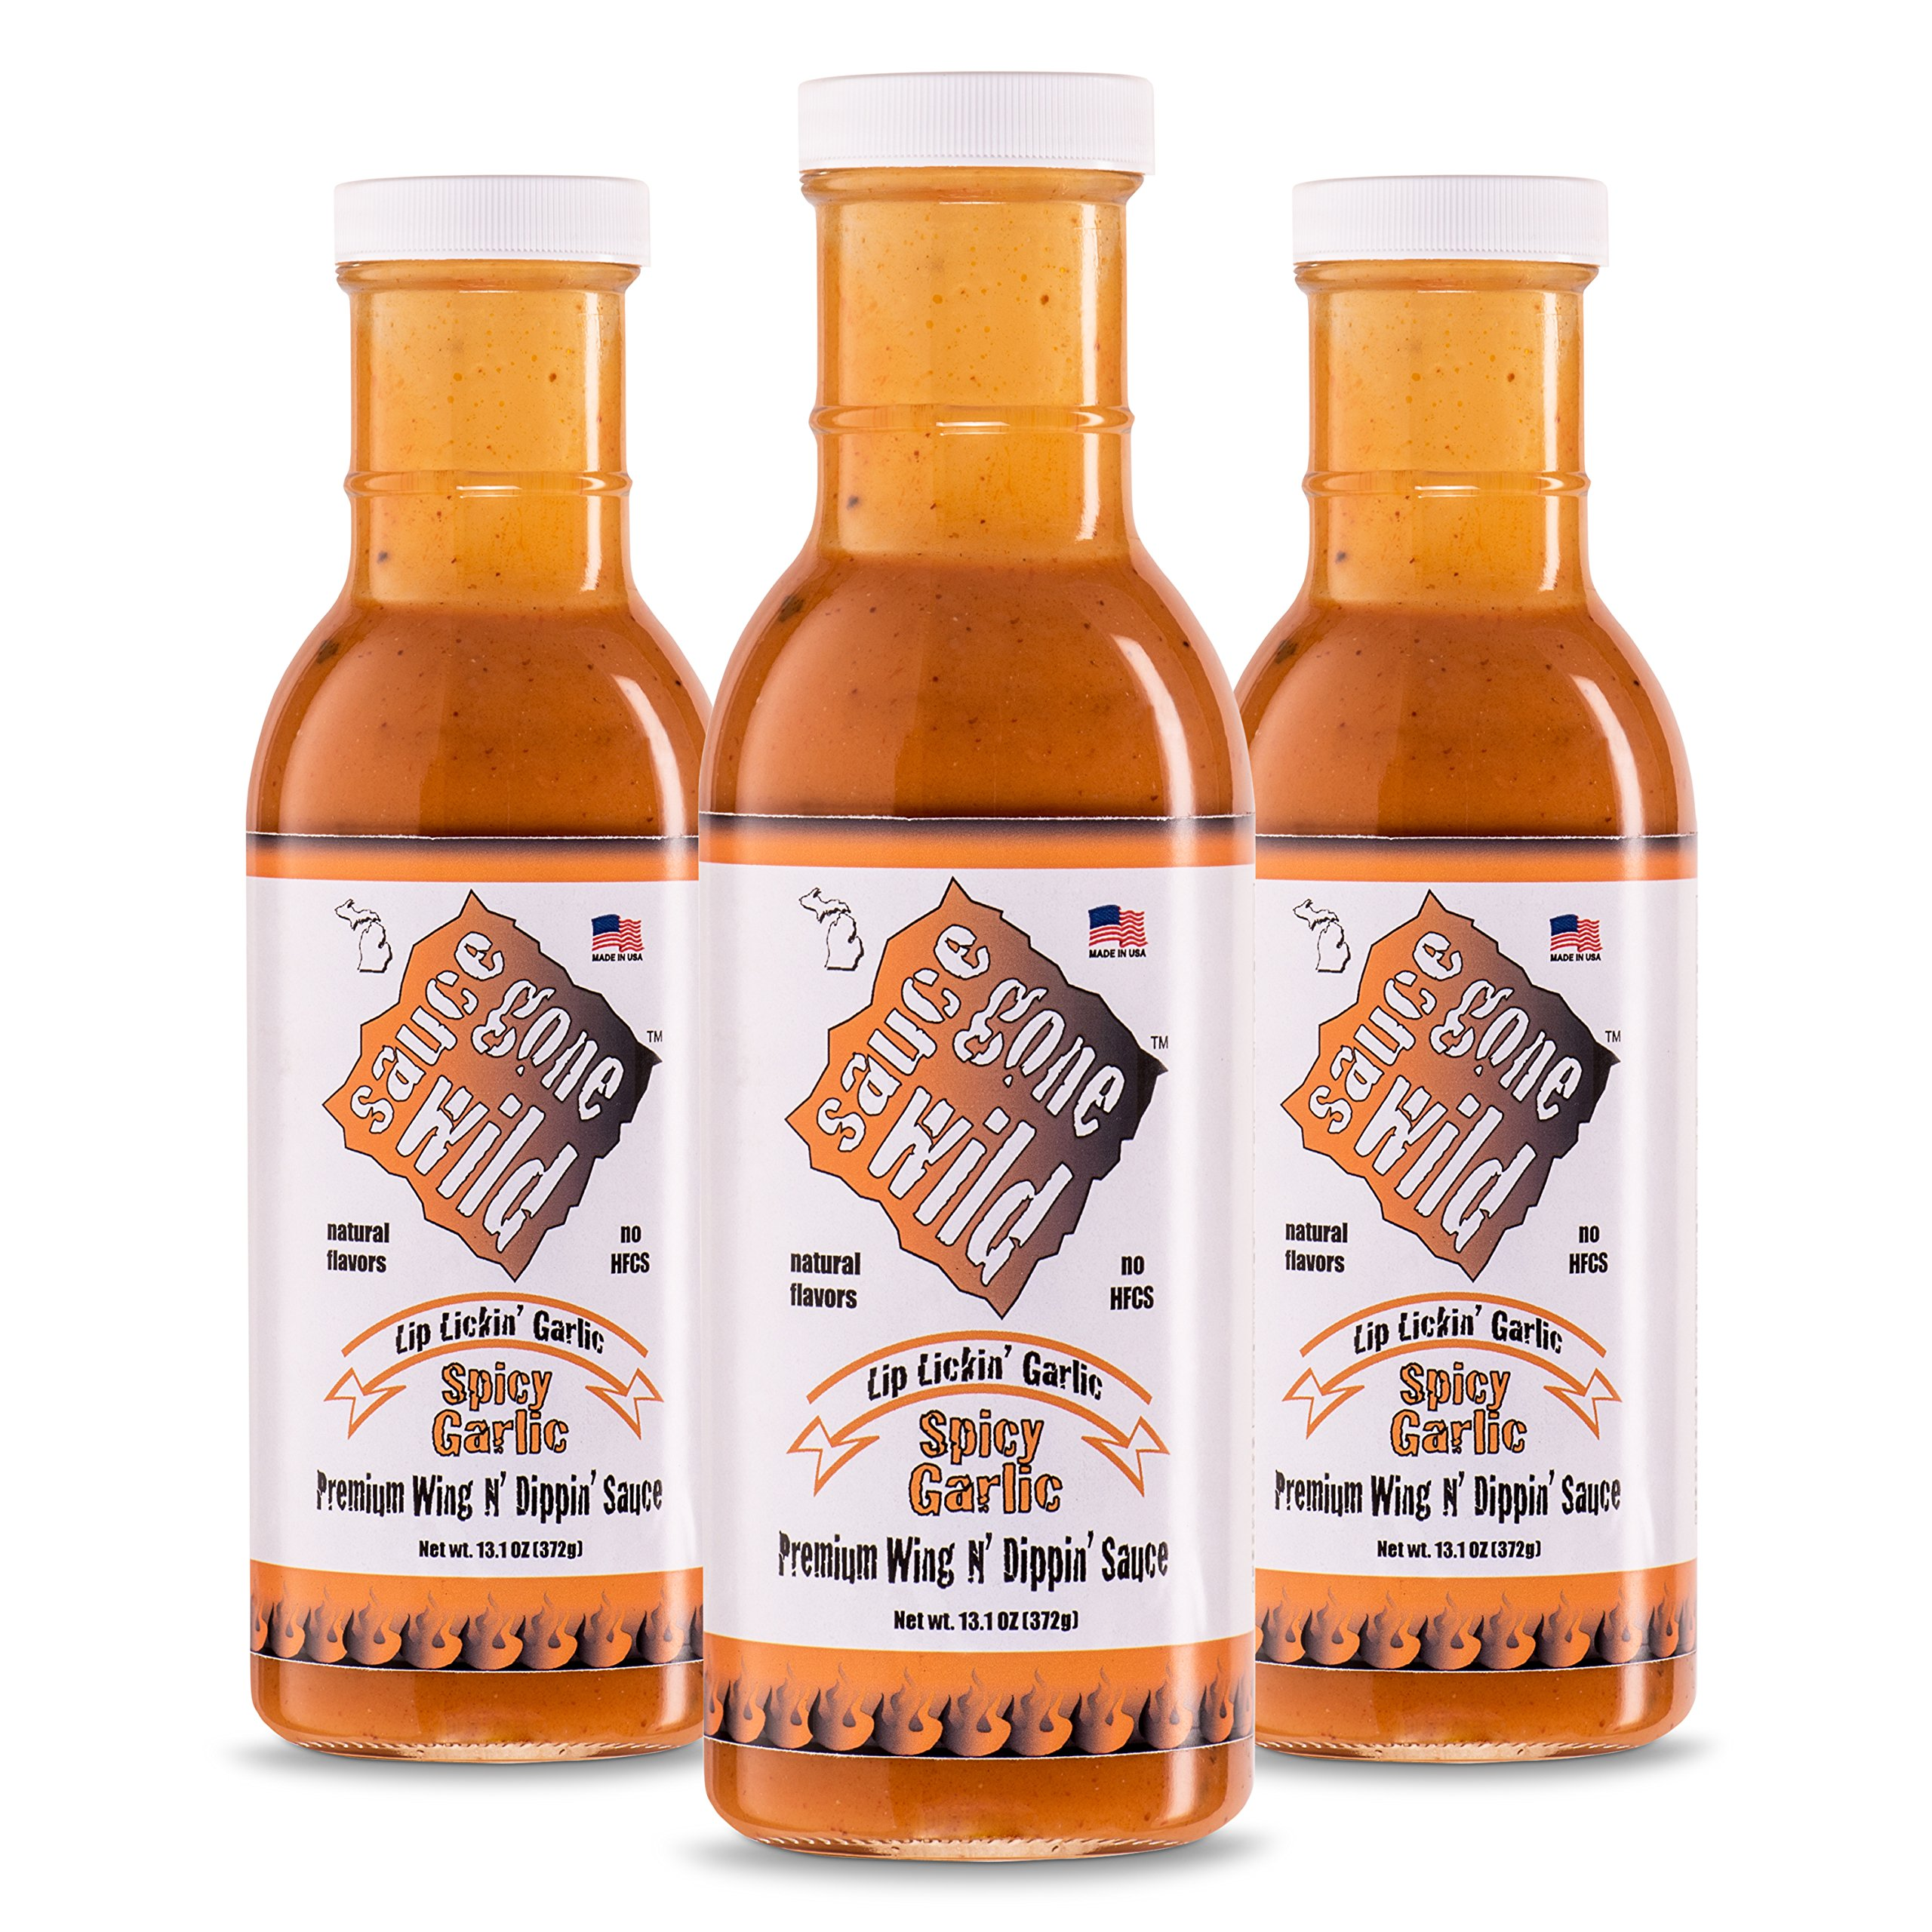 Sauce Gone Wild Wing Sauce - Spicy Garlic Flavor -13.1oz - 3 Bottles - Hot Marinade for Grilling & Cooking Chicken - Made in USA - Tasty Restaurant Style Wings at Home